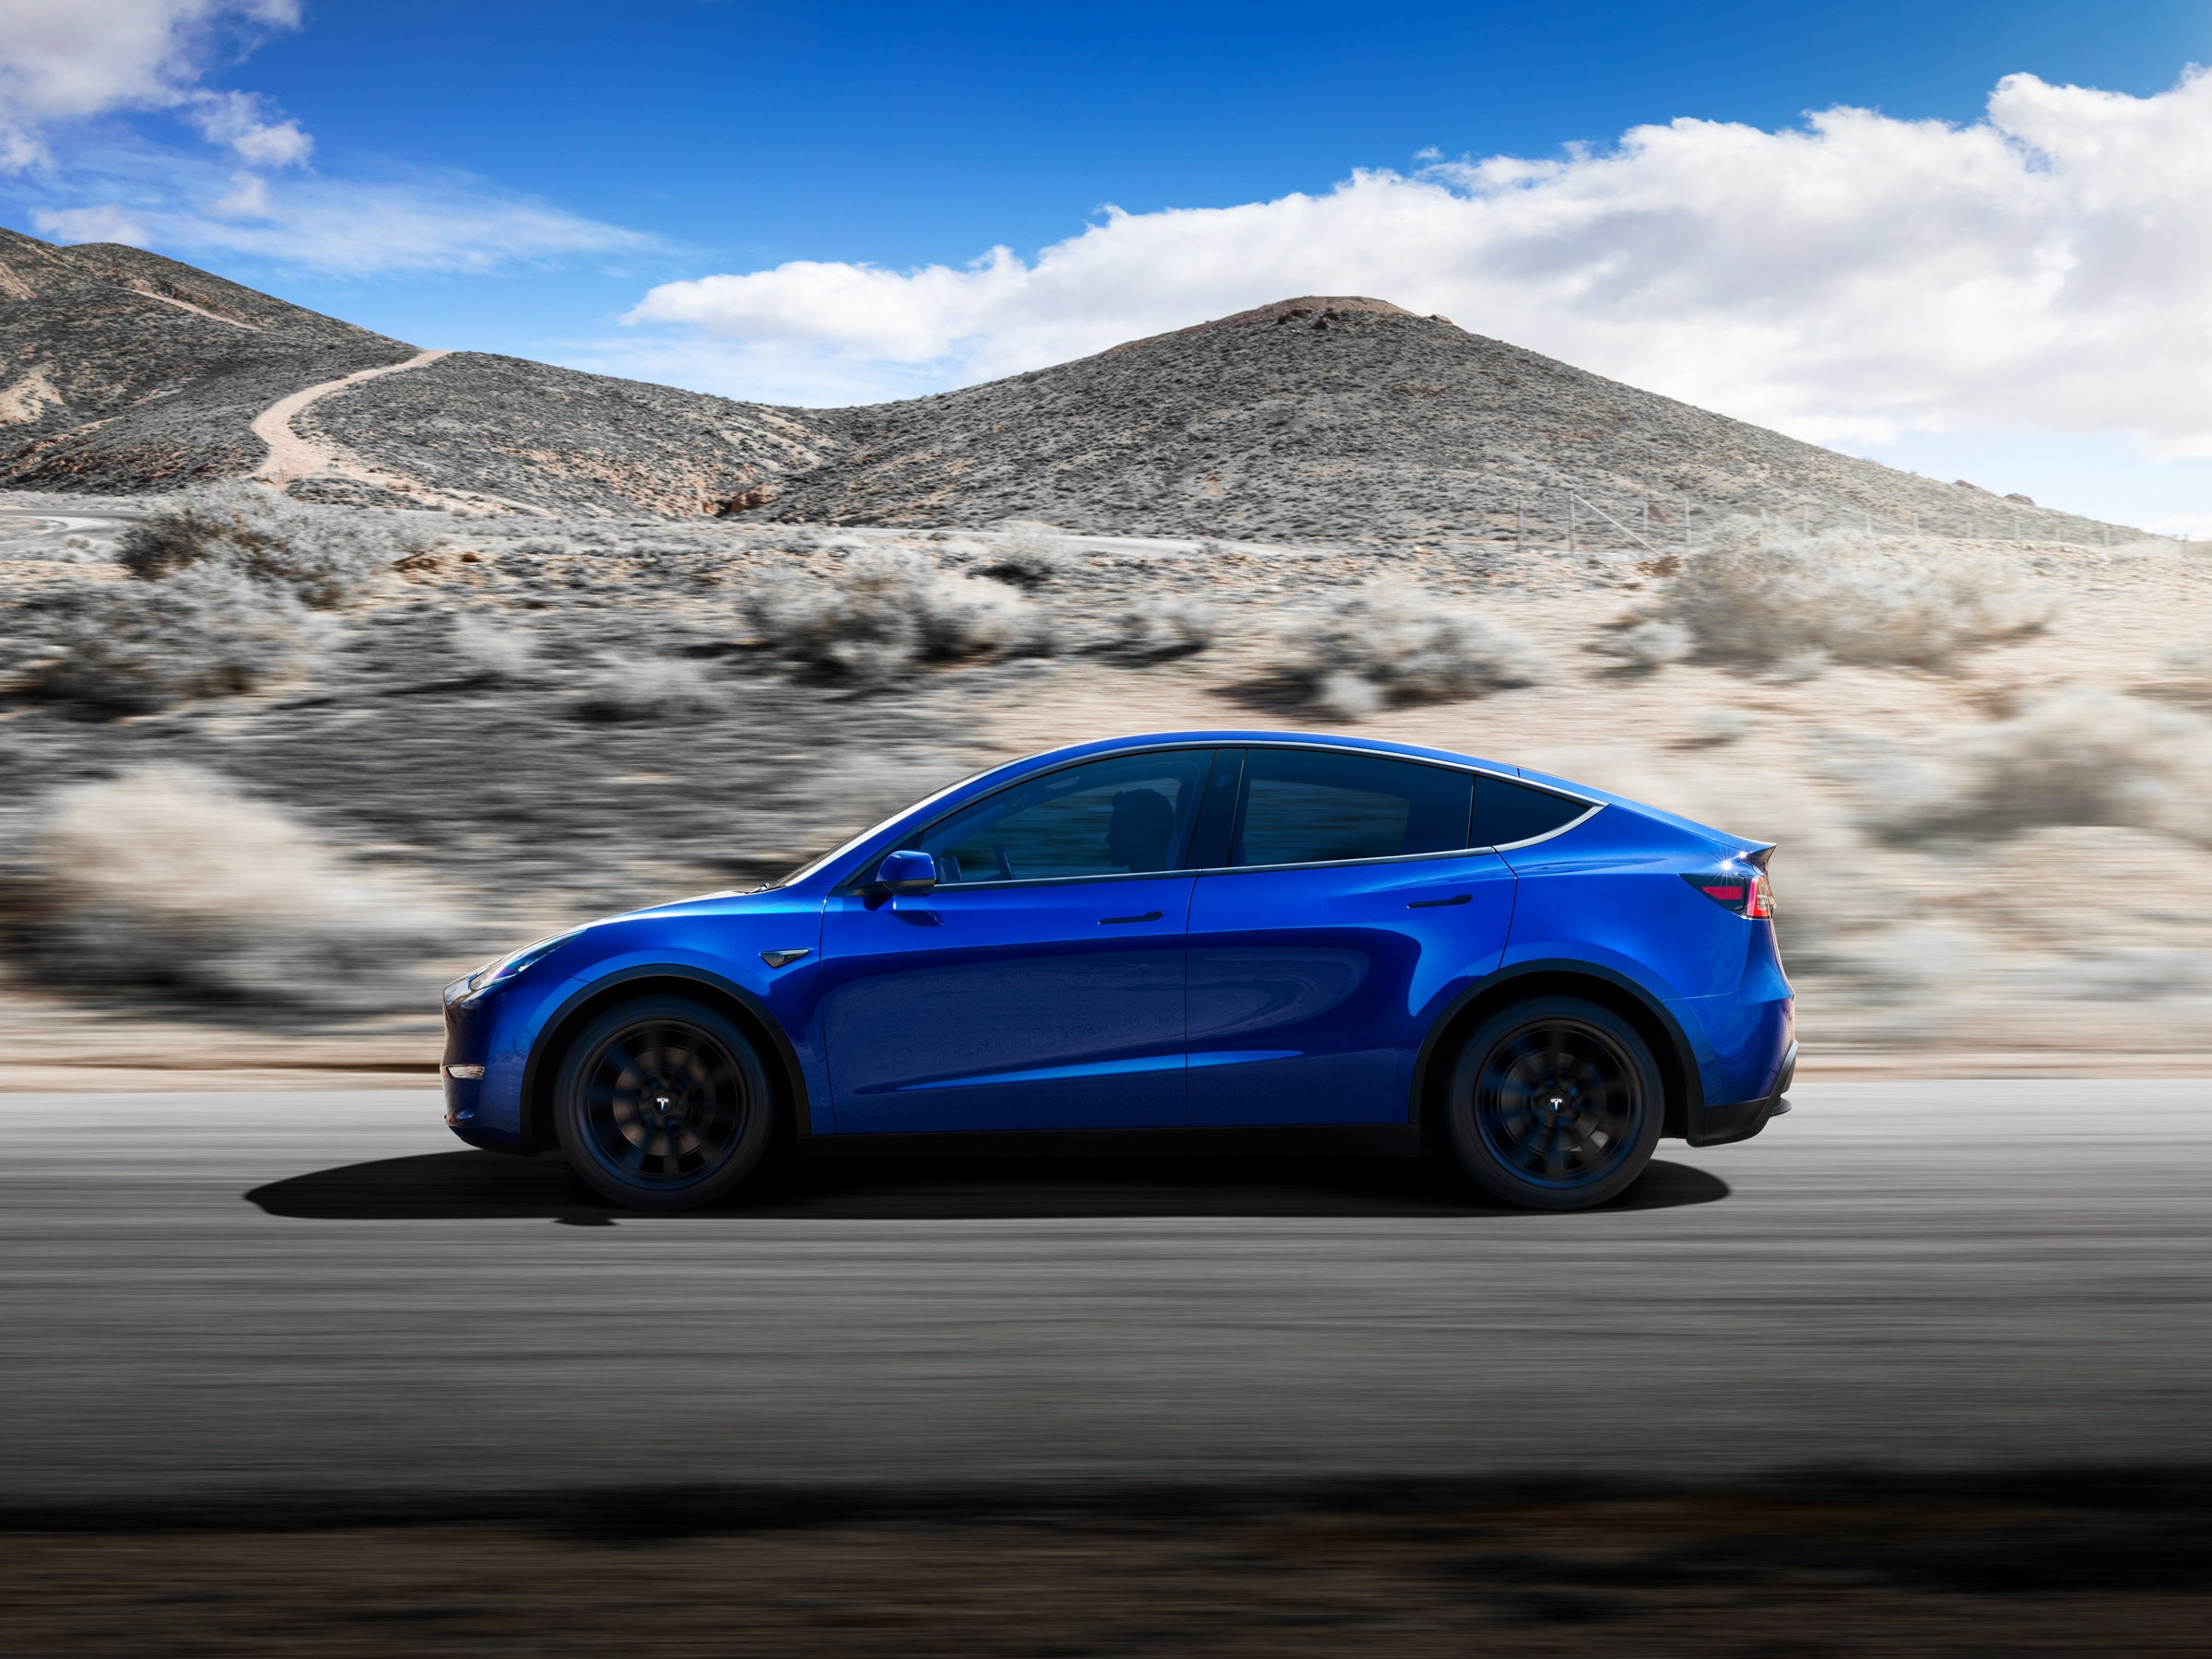 Tesla reportedly cuts price of Model Y SUV by $3000